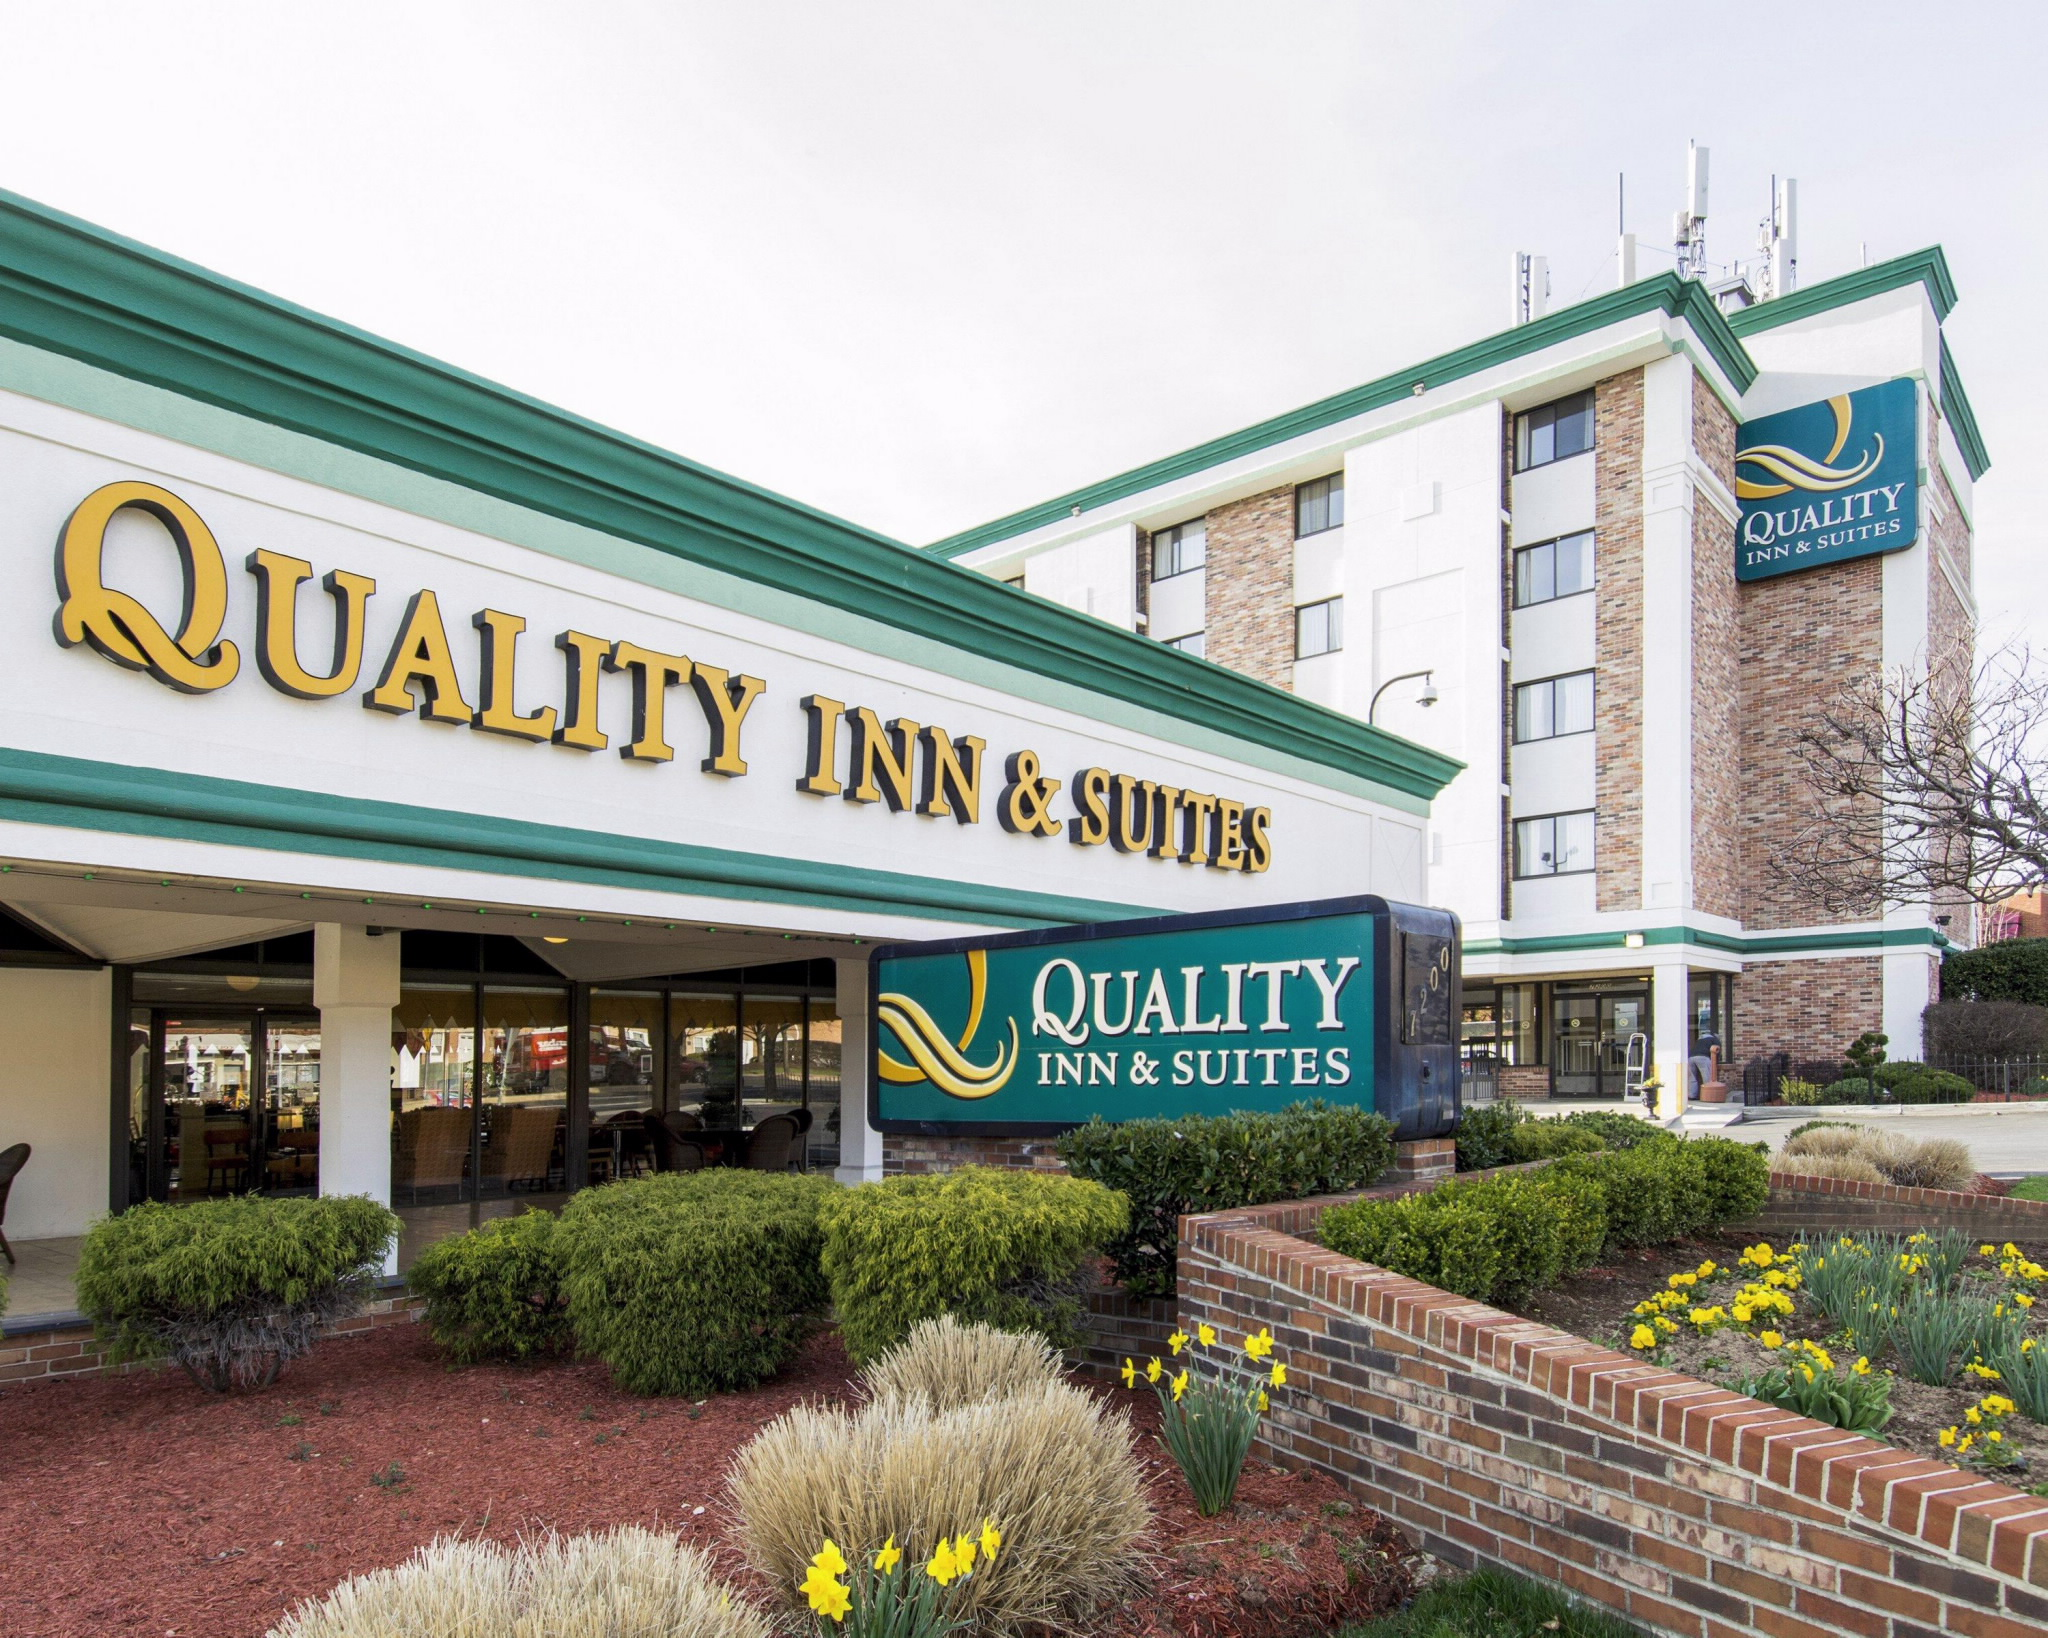 Quality inn hotel coupons